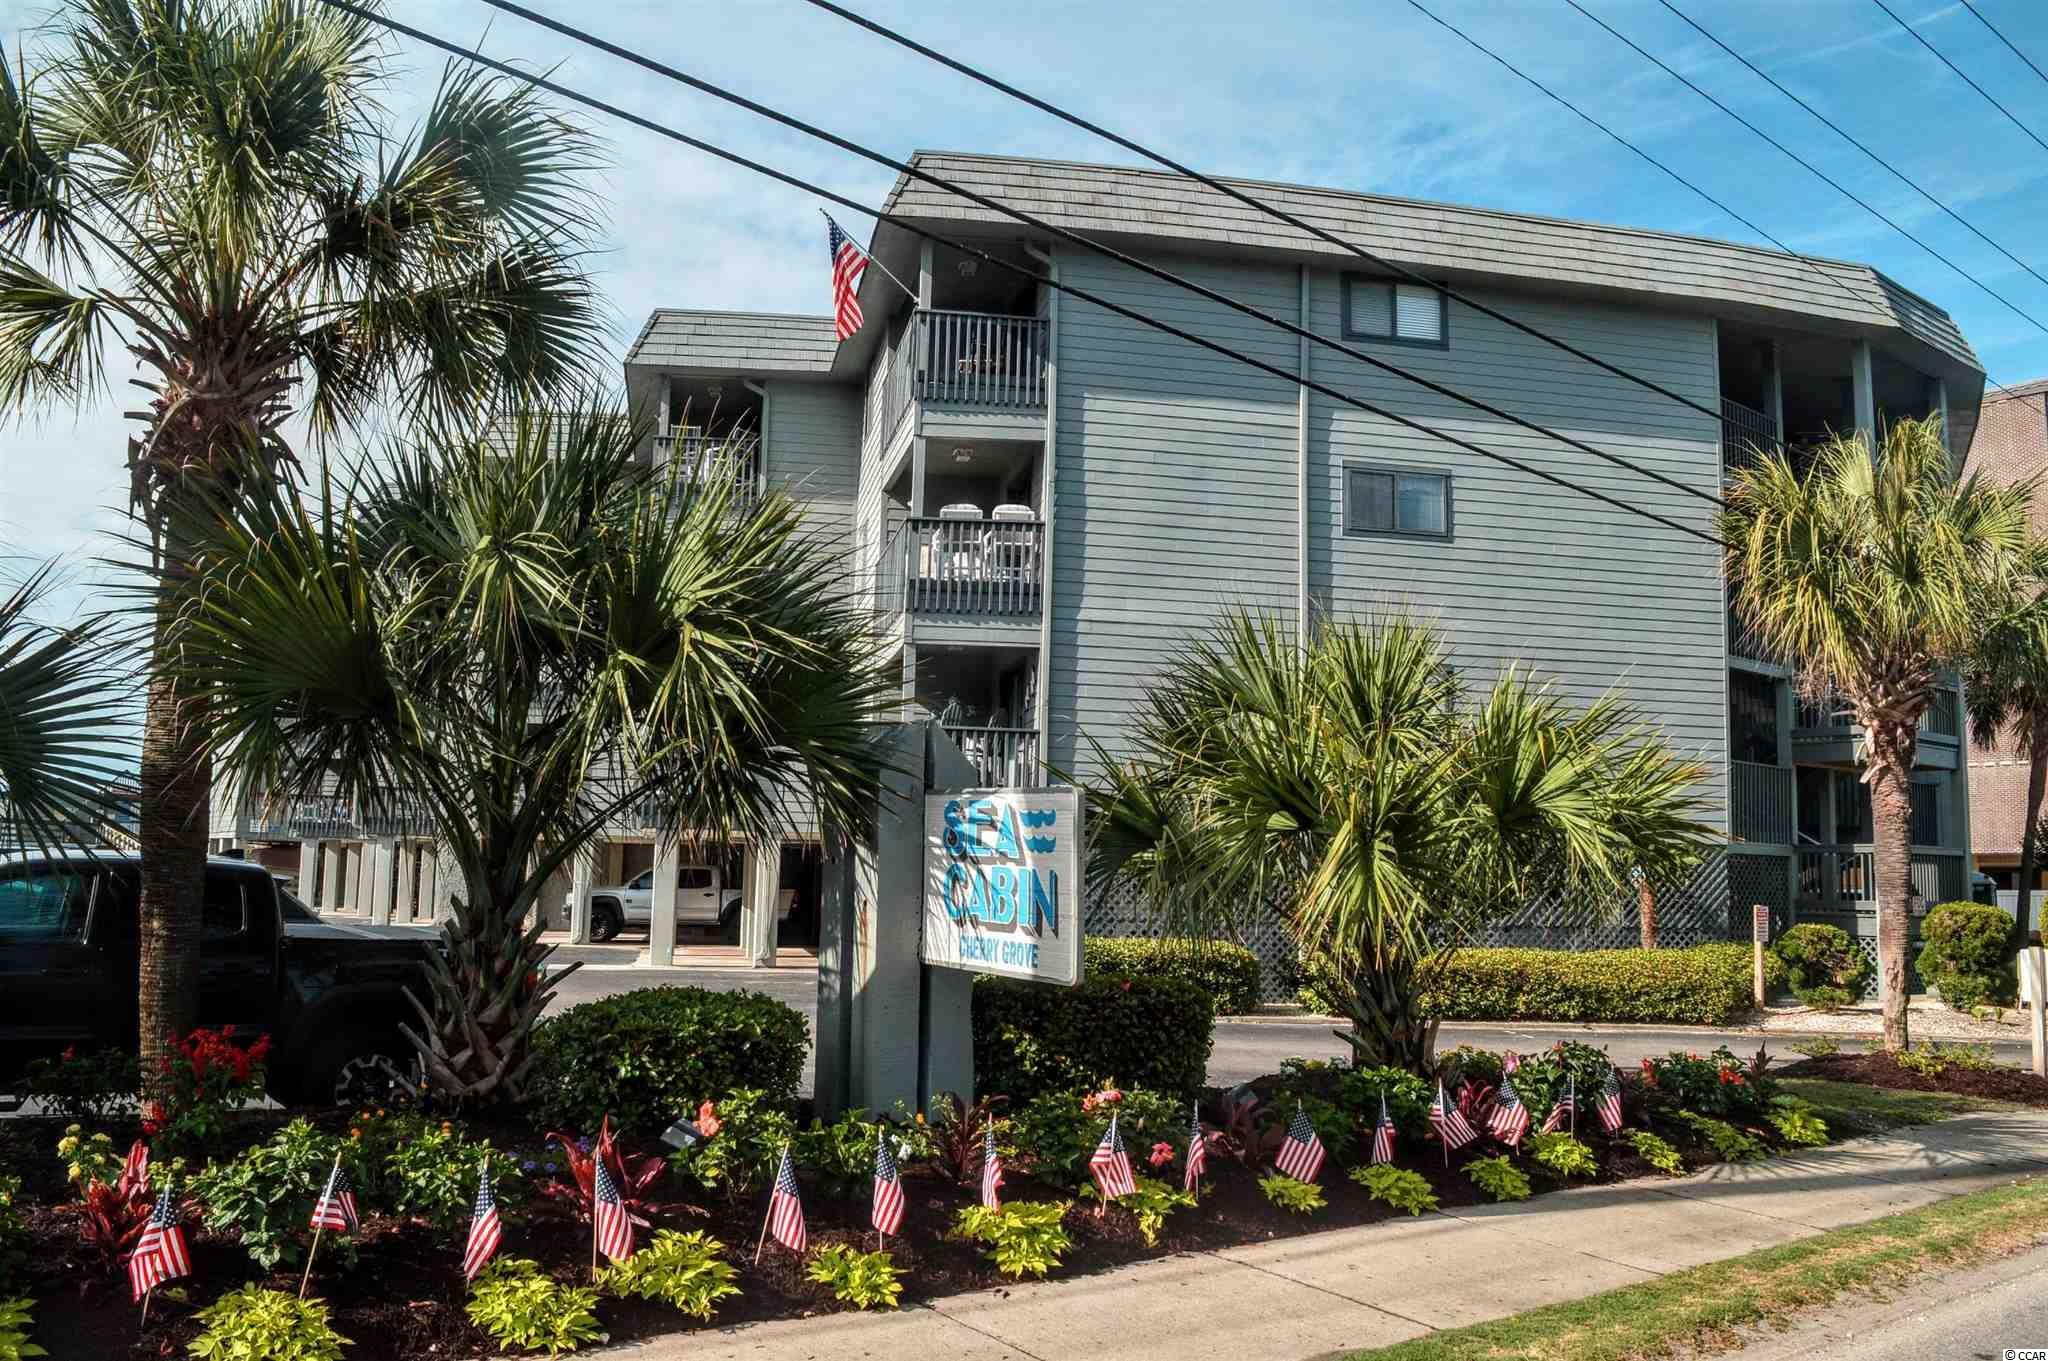 """This ocean front condo is located in the very popular """"Sea Cabin"""" complex located near the desirable Cherry Grove Point. Unit 104 has a great ocean front balcony and is on the first floor so it has fewer steps to the front door. It has a full kitchen, den, one bedroom and one bath.  The unit is set up to accommodate approx. 6 guests using the bedroom queen, an additional bunkbed and a sofa. The HVAC and Hot Water unit were updated in 2019!! This home has excellent rental history with documentation available. Sea Cabin amenities include a nice swimming pool on the property as well as a private pier for the use of the owners and their guests. The complex has laundry rooms located in or near each building and unit 104's laundry is conveniently located on the same floor and just a few steps away. There are 2 parking places allowed for each unit and there is space for some of the property owners to keep a golf cart. The complex has 2 convenient beach access walkways and water spigots are available nearby so you can rinse your feet and chairs when you return. The HOA dues provide the condo owners with water, sewer, trash, cable, internet, grounds maintenance, pool maintenance, pest control, building insurance (excluding HO6), and management fees. The beautiful beachfront Sea Cabin complex in Cherry Grove is a more laid back and quiet section of North Myrtle Beach but is still super convenient to popular shopping areas, numerous top quality golf courses, live entertainment and dance venues, sports complexes, amusements of every description, and of course hundreds of awesome restaurants! 6000 N. OCEAN BLVD. UNIT #104 NORTH MYRTLE BEACH, SC (SEA CABIN~A COUPLE BLOCKS FROM The Cherry Grove Point!)  **Listing agent has a quick video taken inside unit for anyone needed a video ask agent for it to be texted** Contact your agent for full details on Rules/ Regulations and full details on Sea Cabin (Listing Agent has lots of information provided)."""